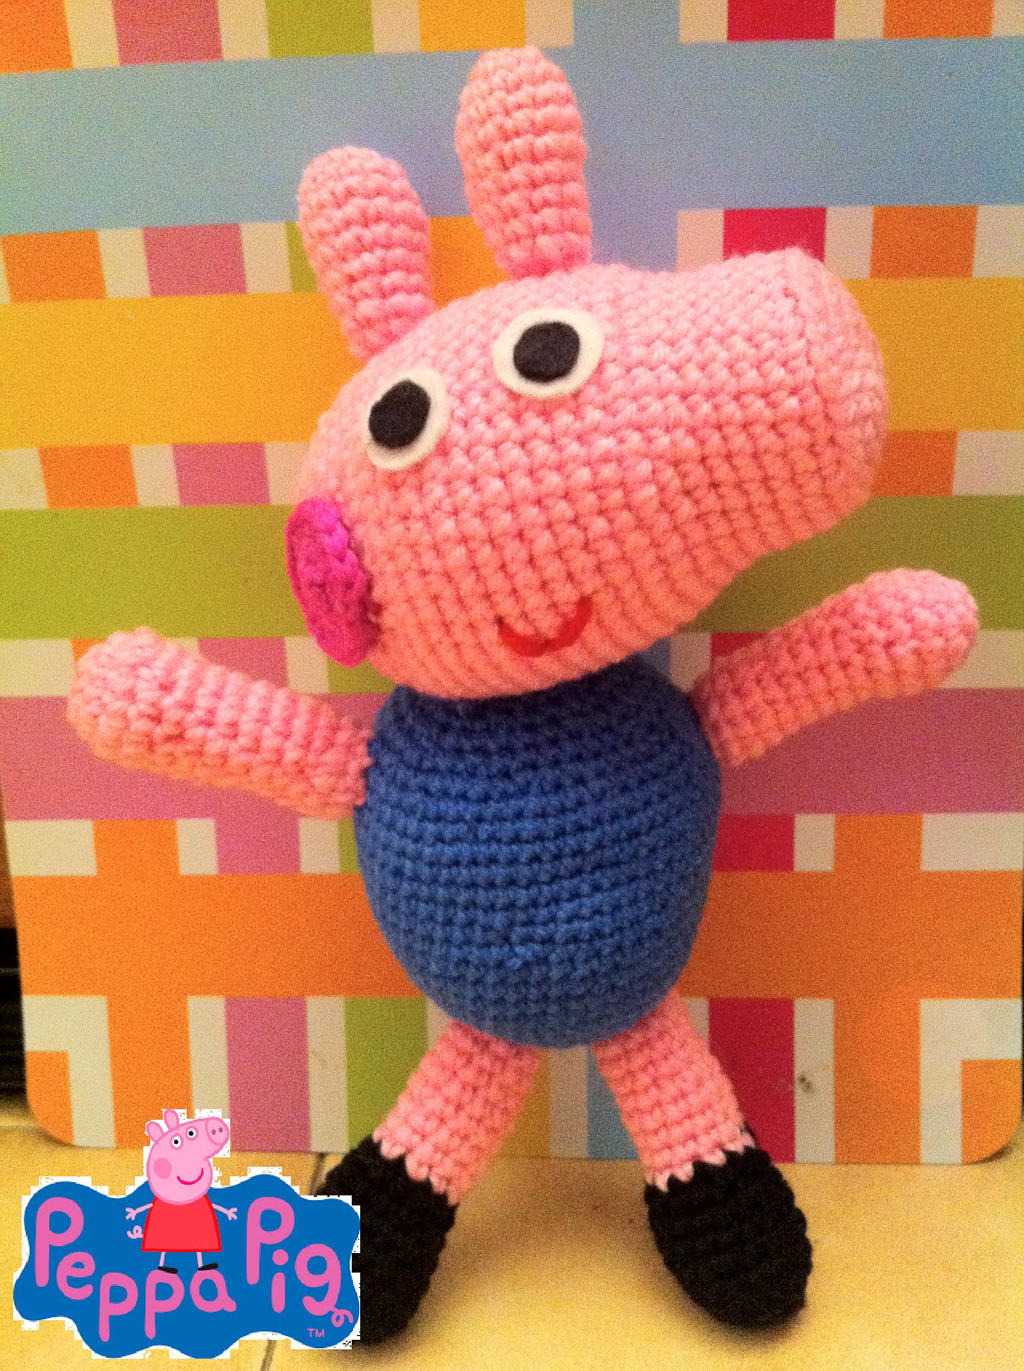 Peppa Pig Amigurumi by myachan91 on DeviantArt